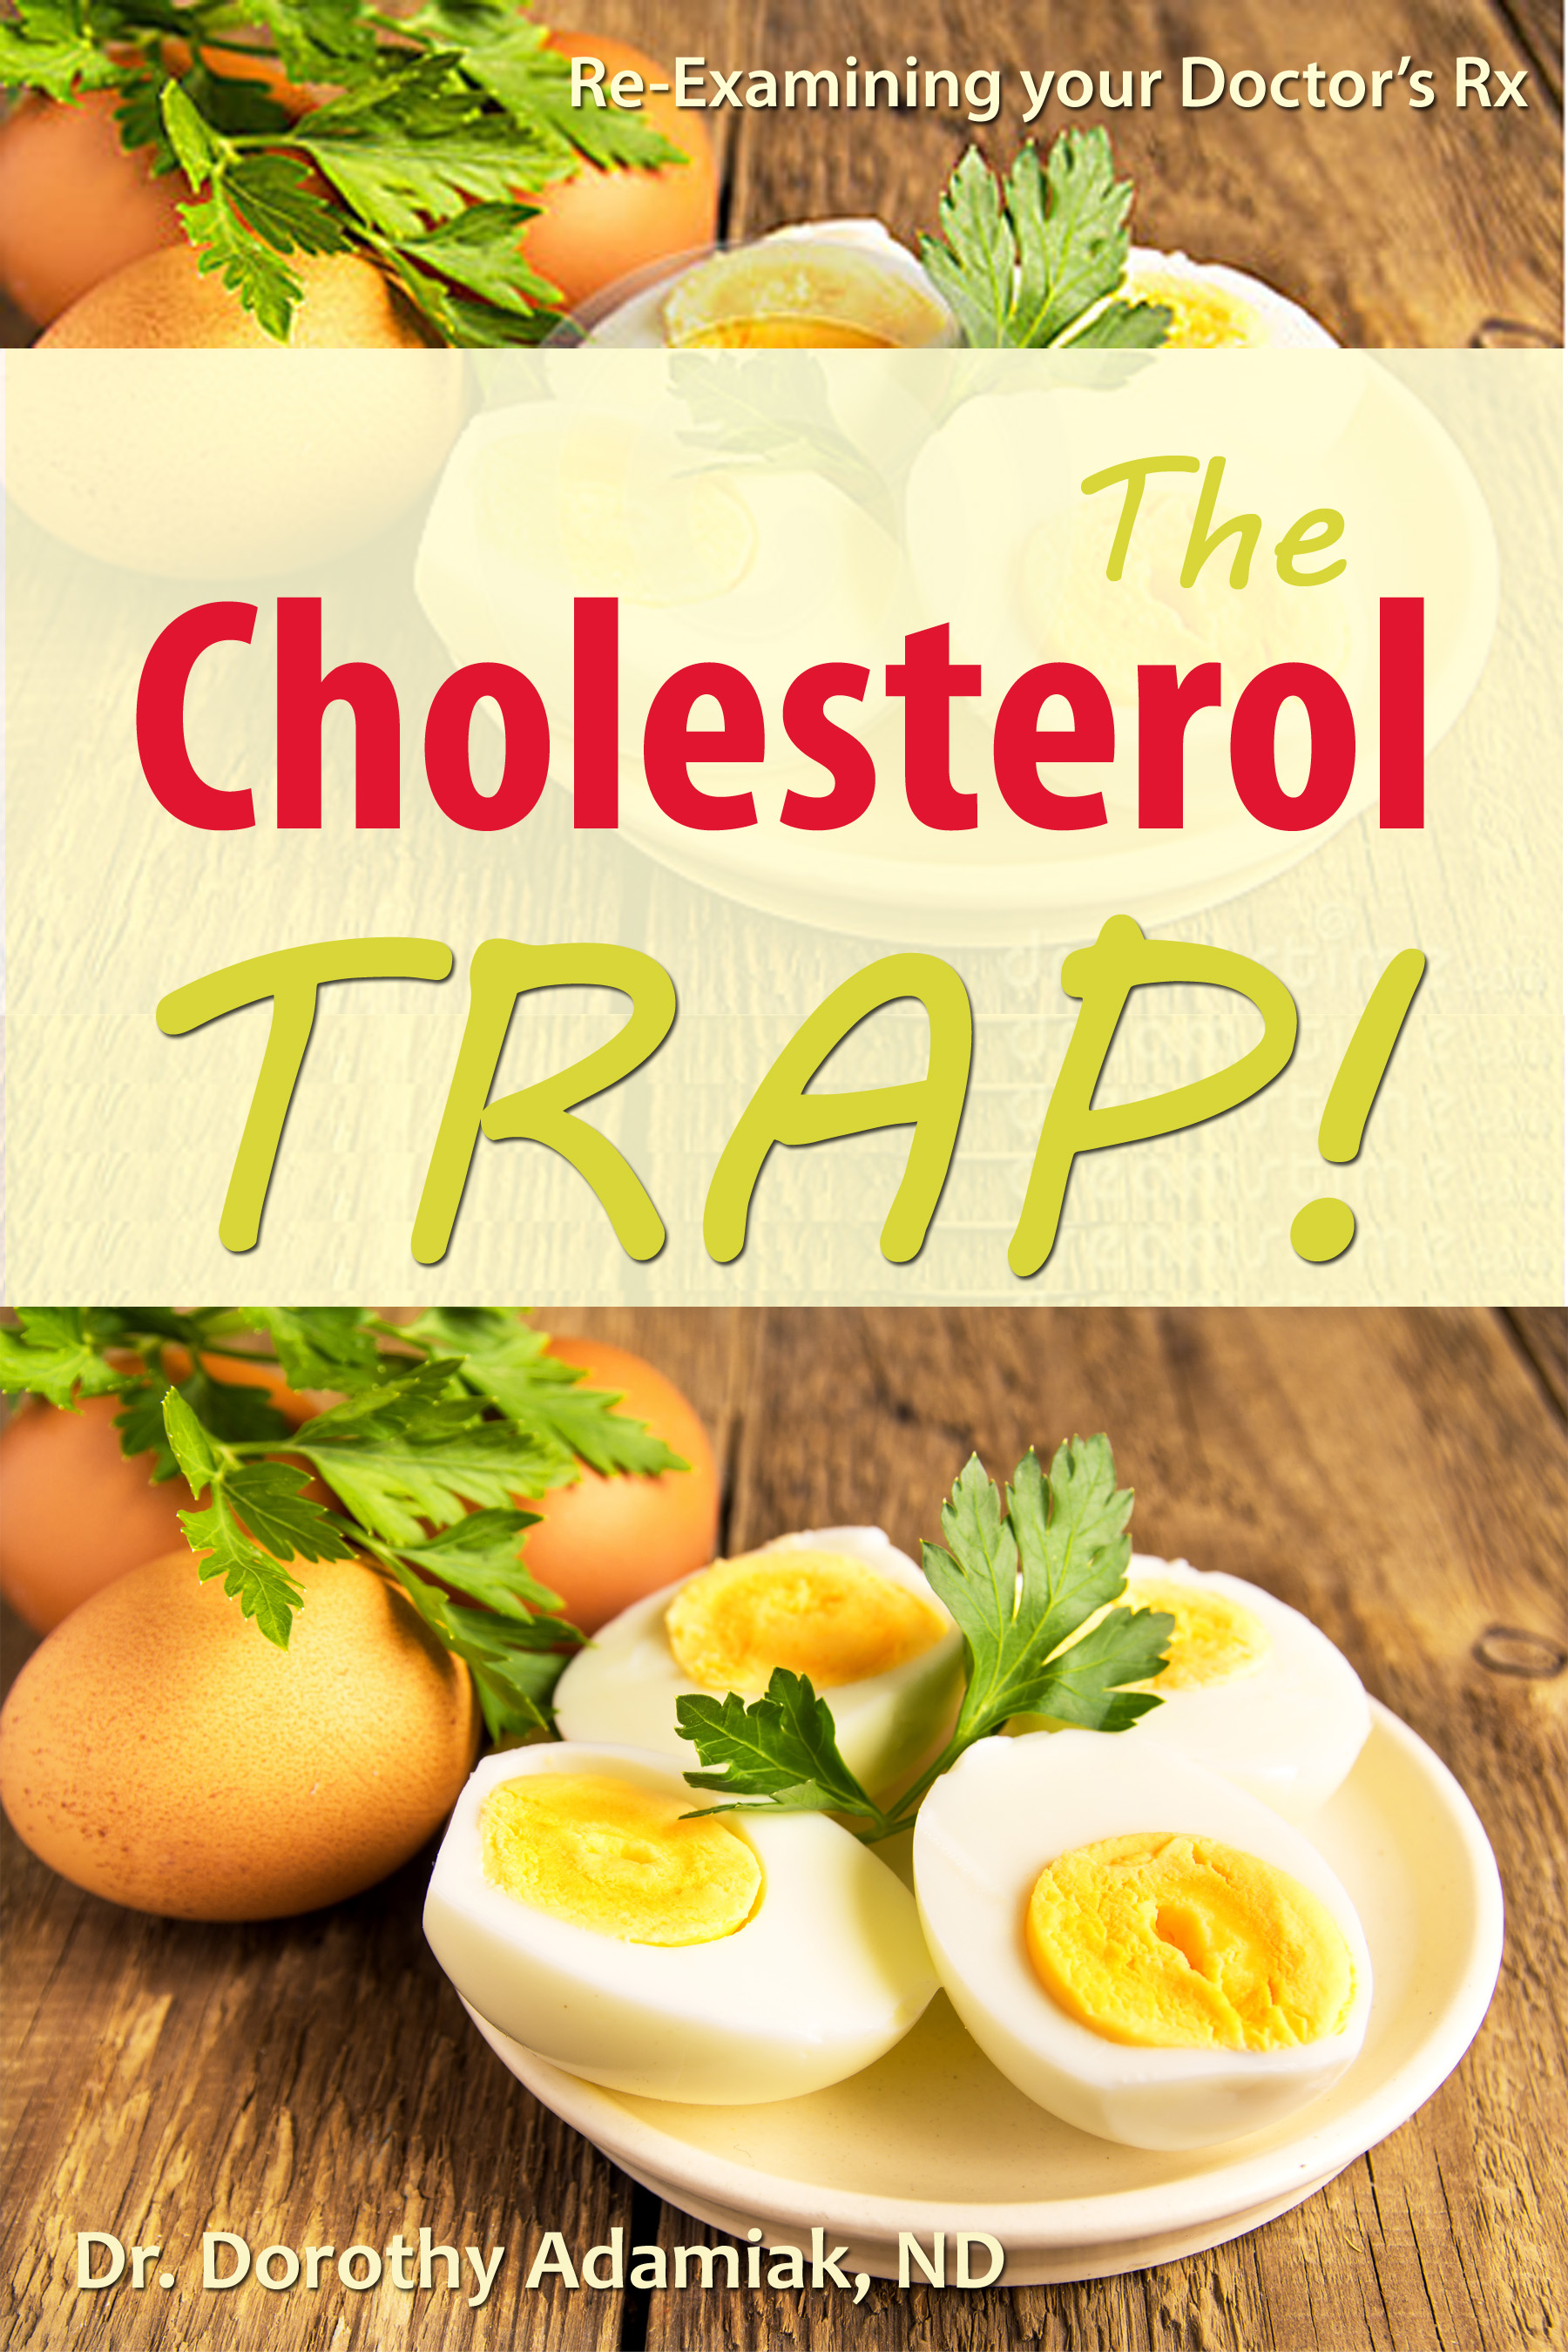 The Cholesterol Trap